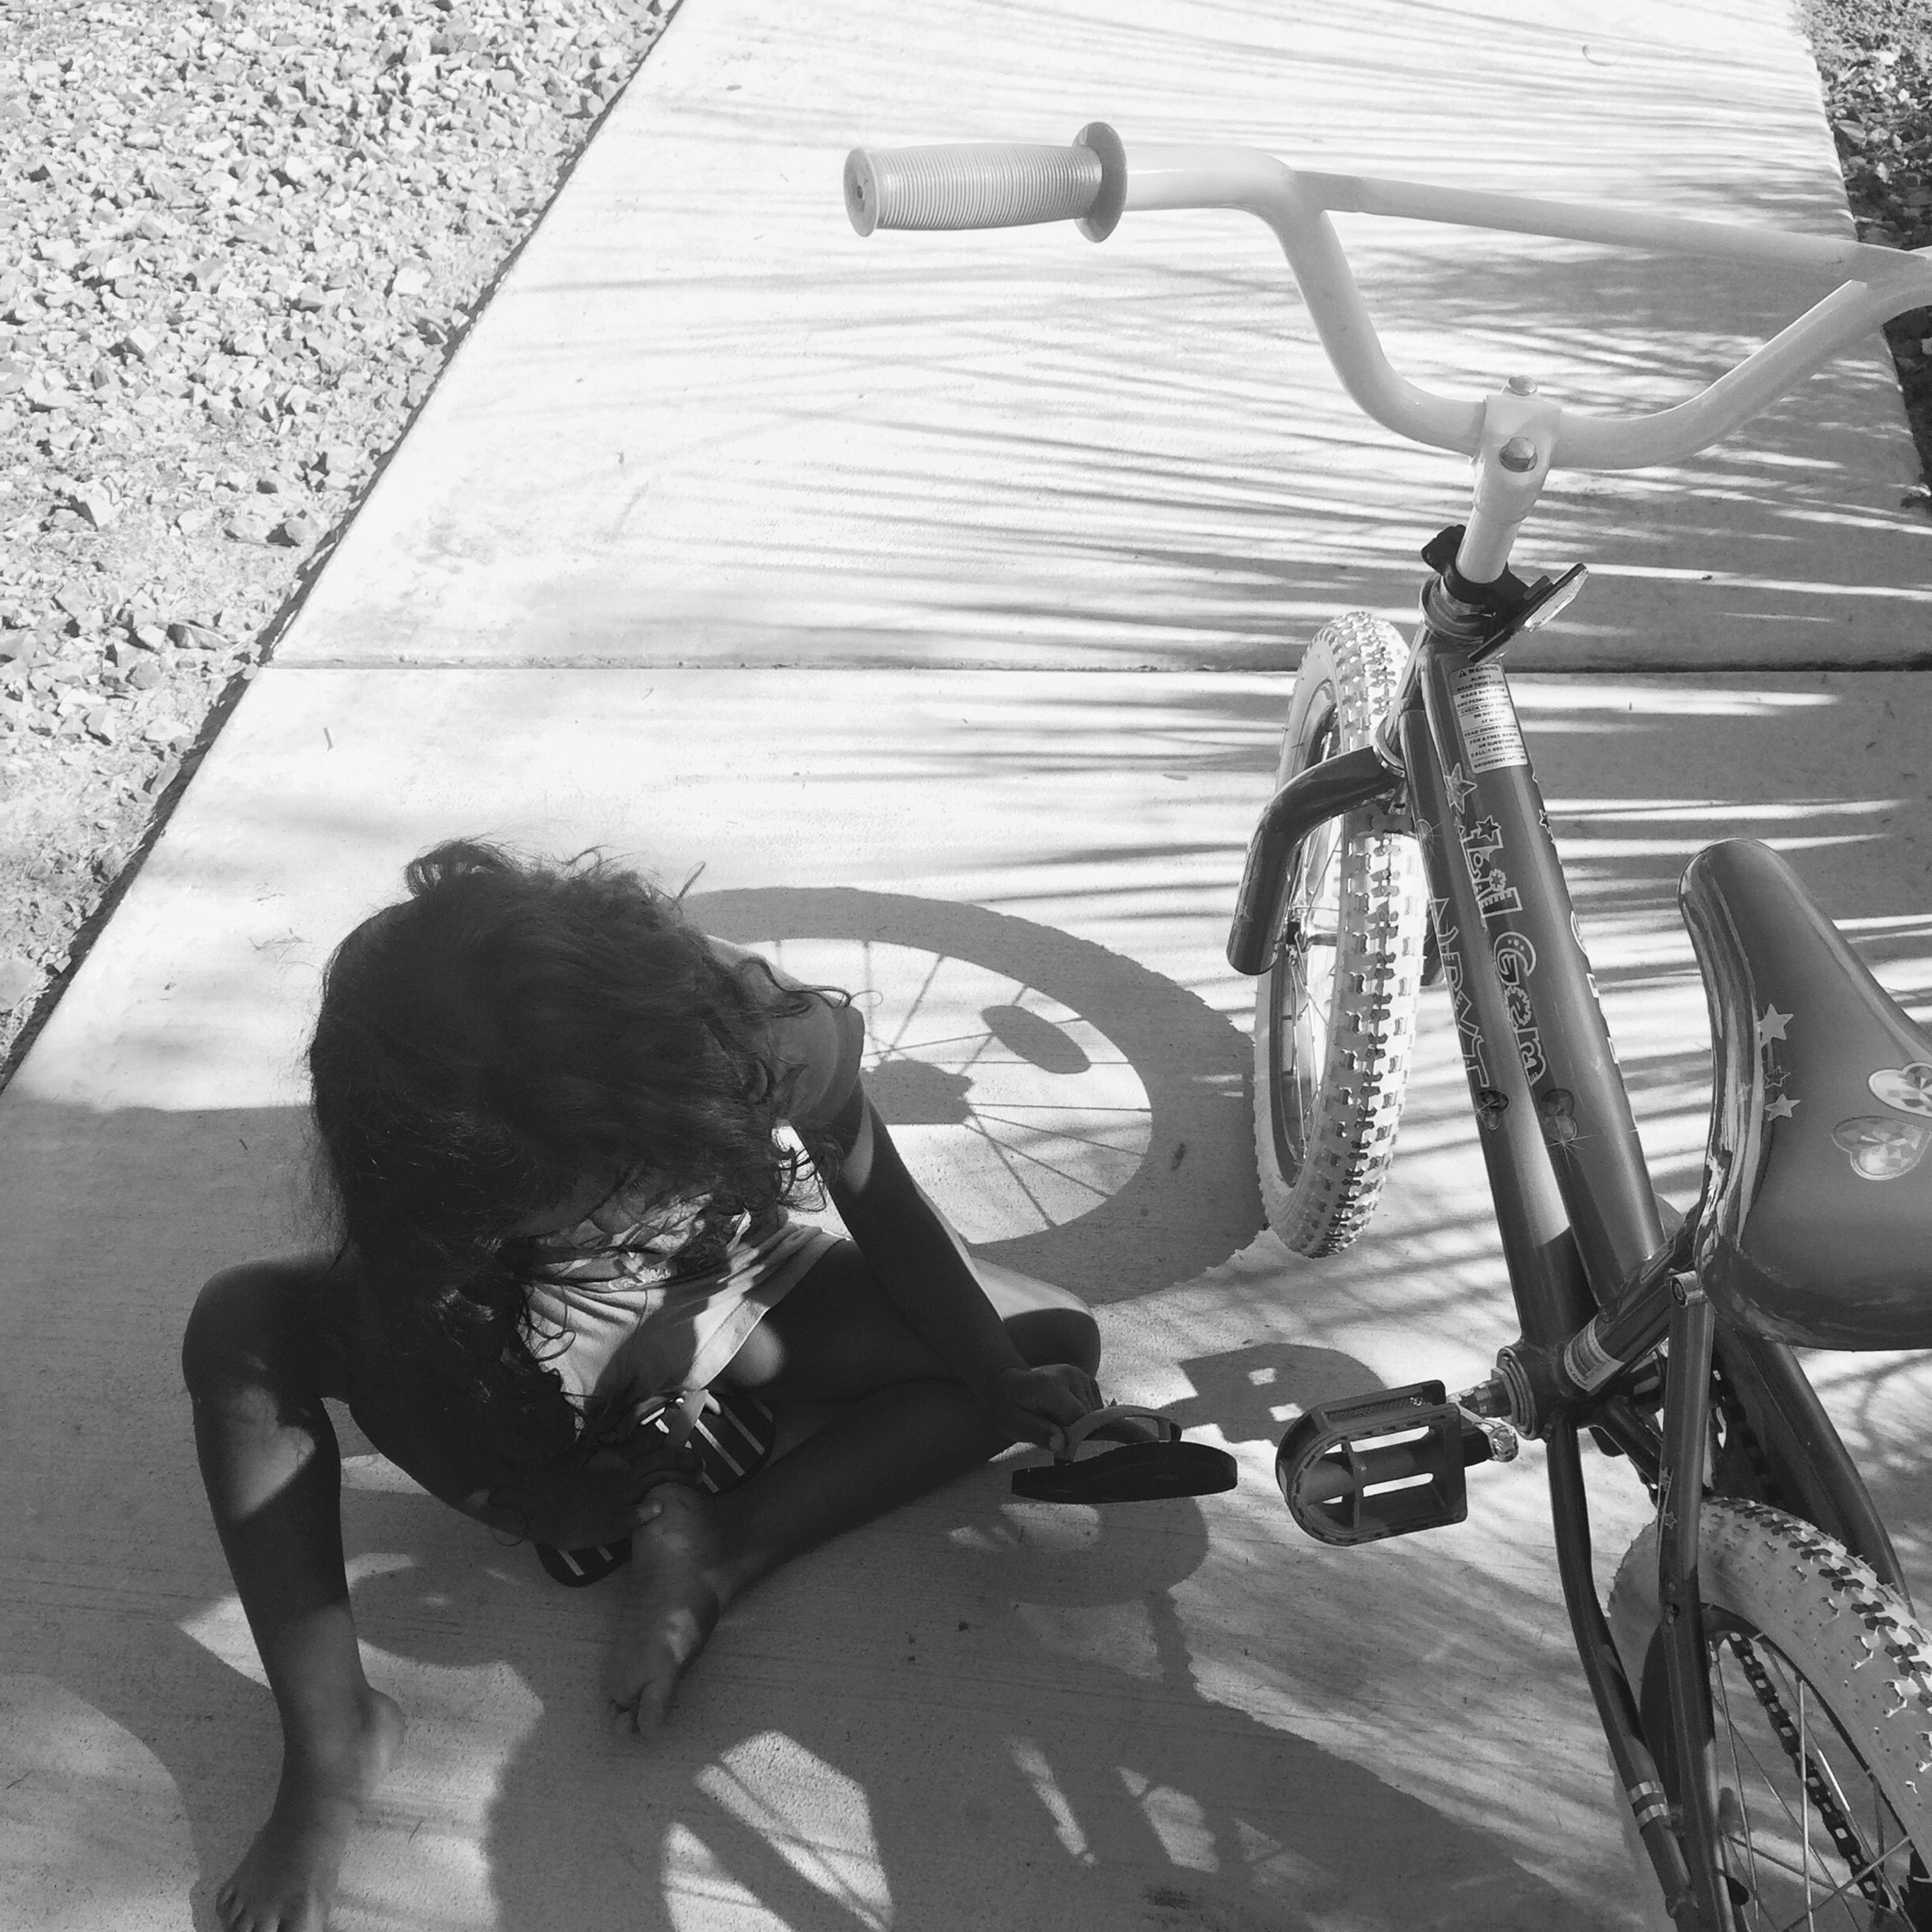 transportation, mode of transport, bicycle, high angle view, land vehicle, shadow, lifestyles, leisure activity, men, sunlight, street, riding, full length, day, travel, sitting, outdoors, person